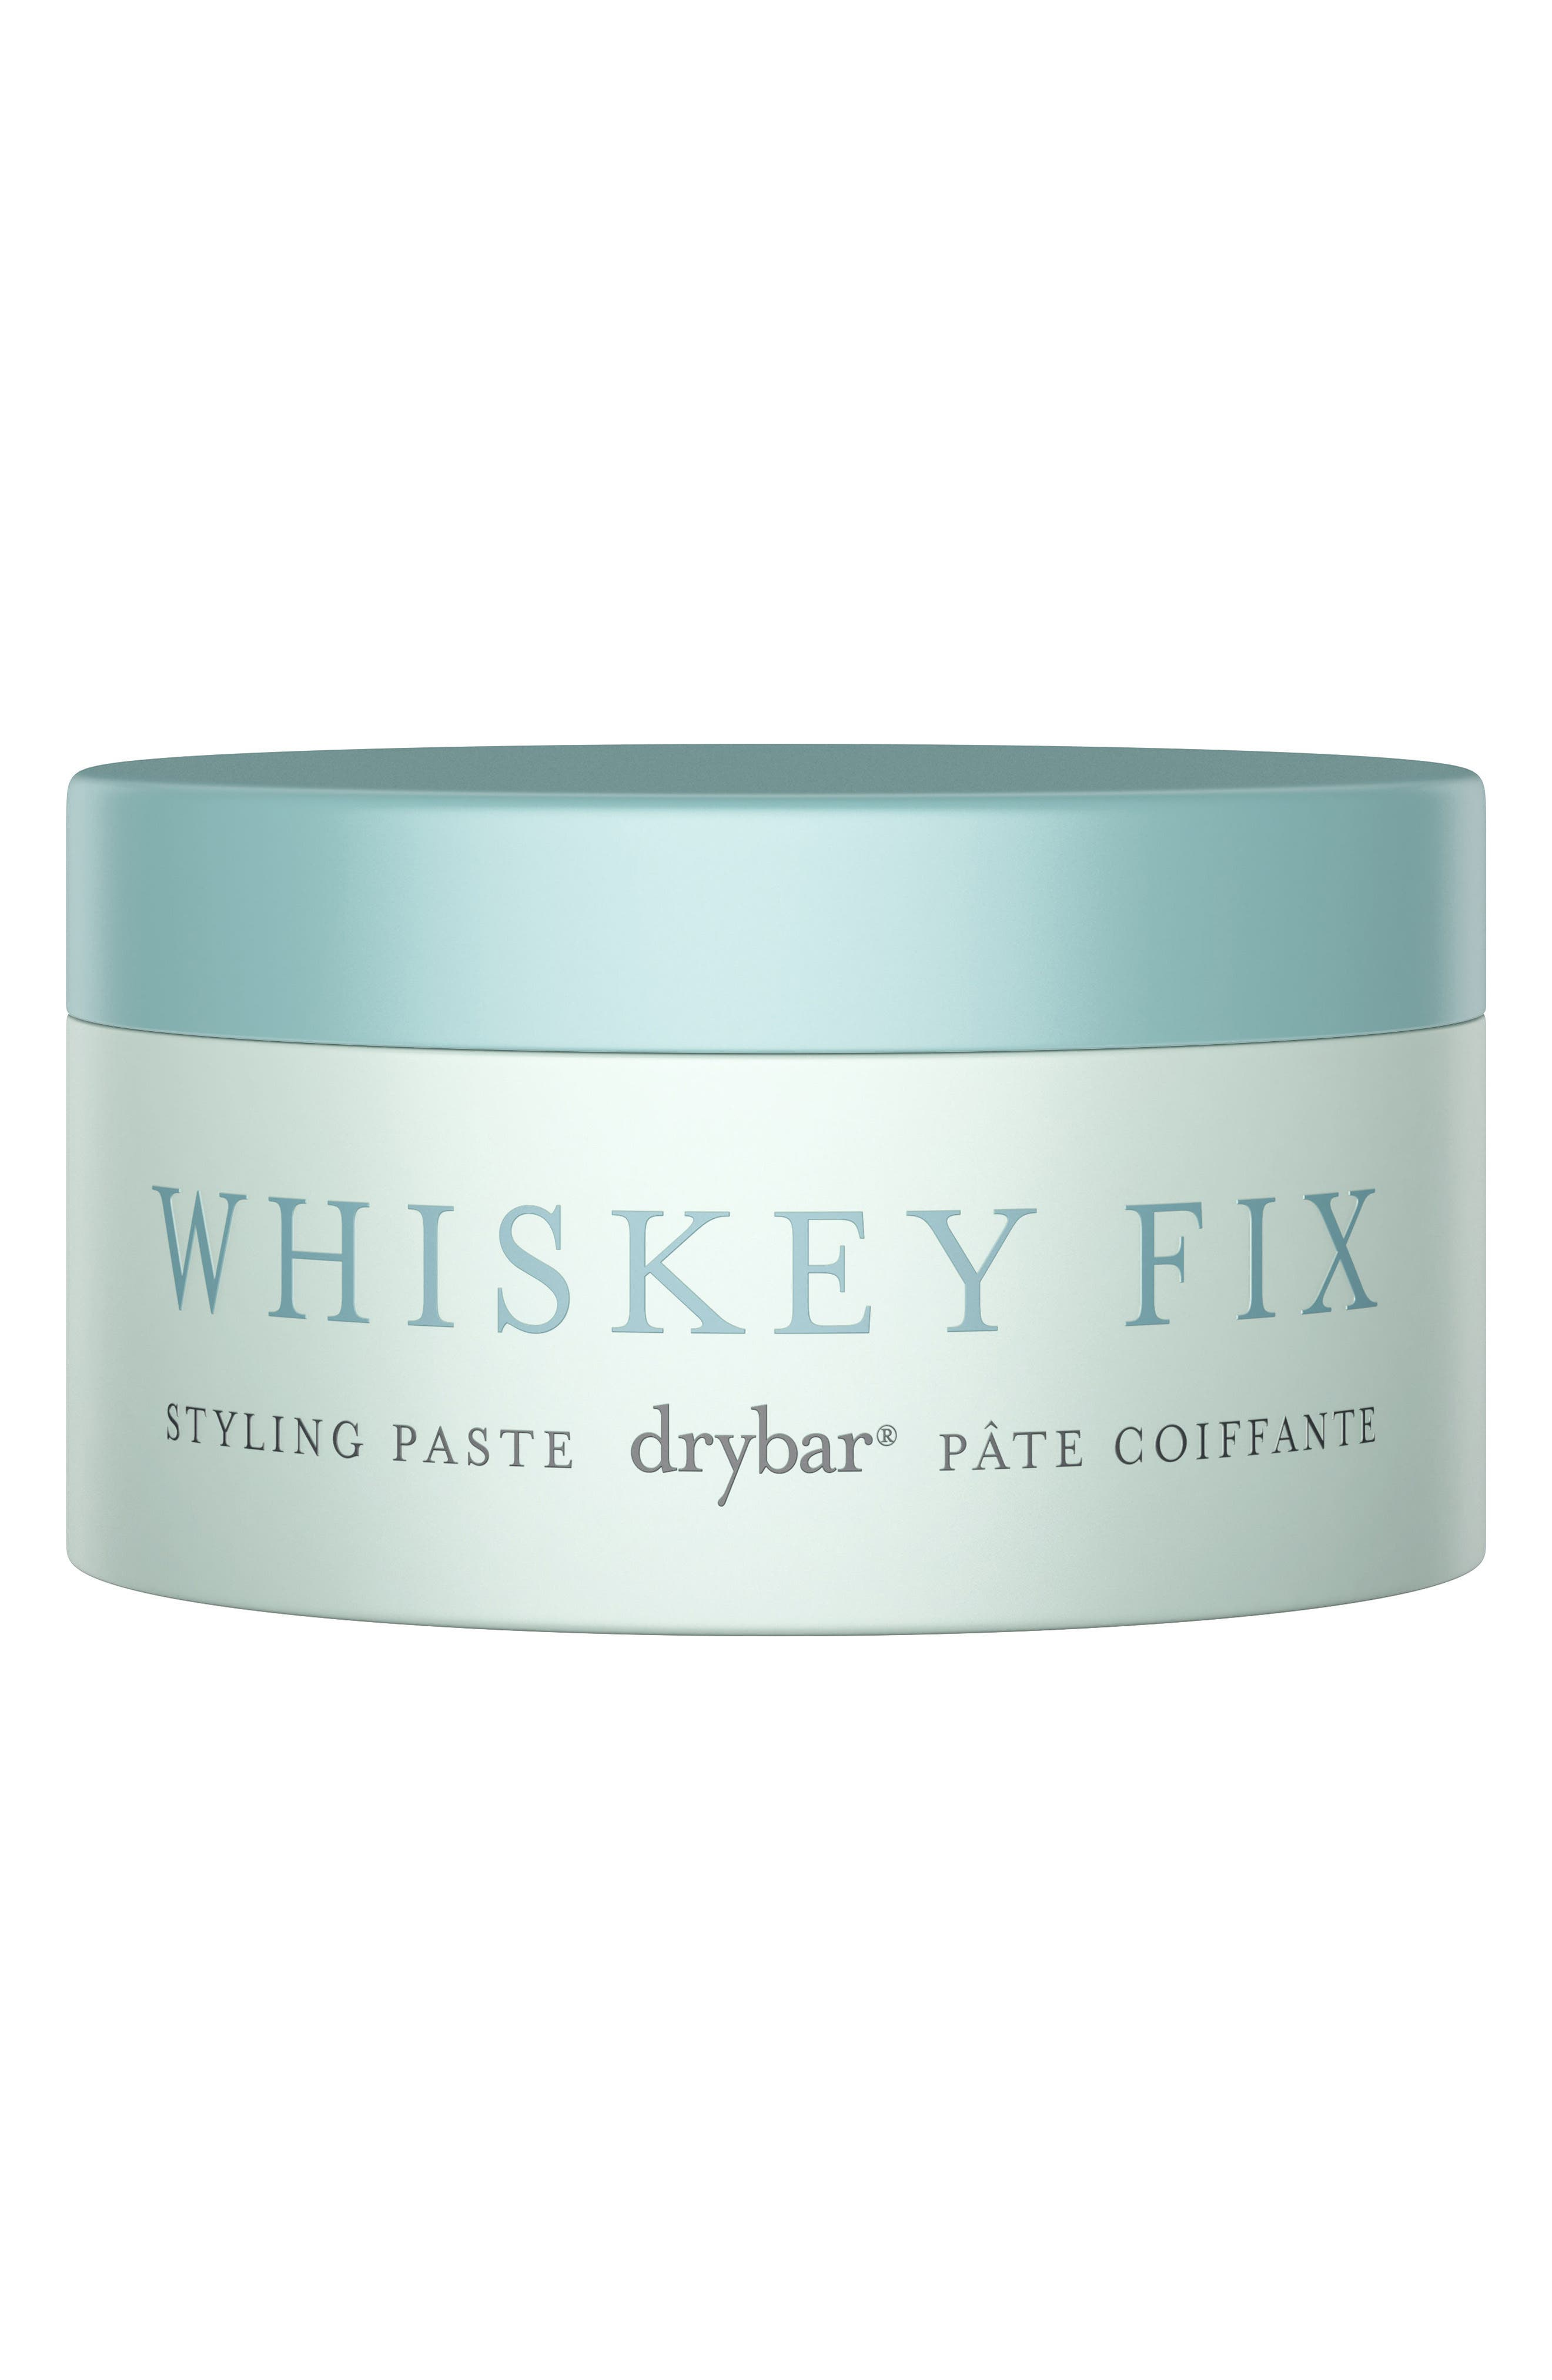 Whiskey Fix Styling Paste,                             Main thumbnail 1, color,                             NO COLOR